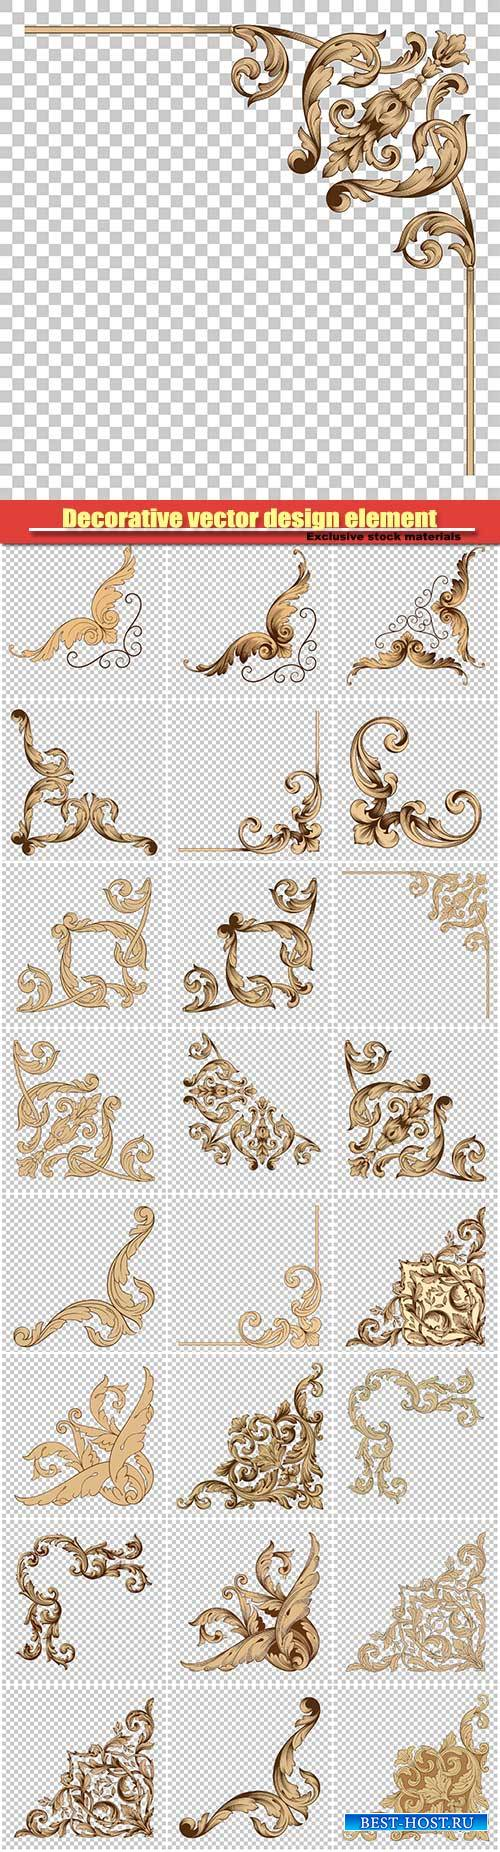 Decorative vector design element, vintage baroque ornament